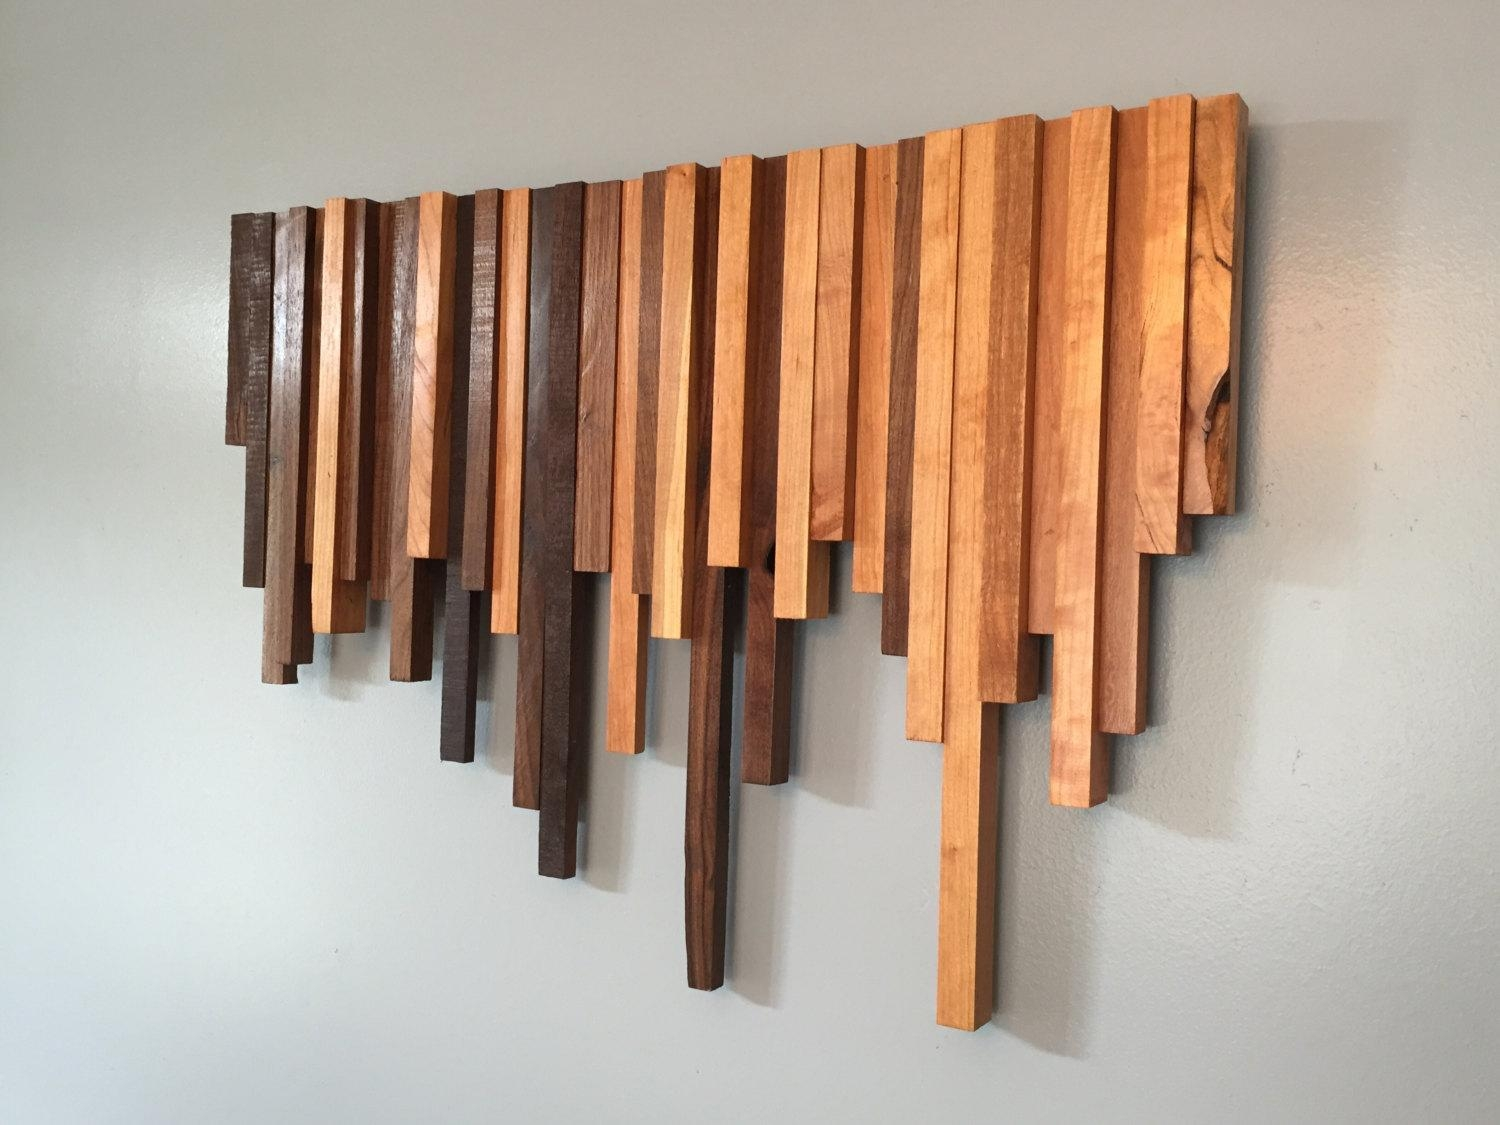 Stylish Wood Wall Art Decor | Jeffsbakery Basement & Mattress Inside Wall Art On Wood (View 7 of 20)